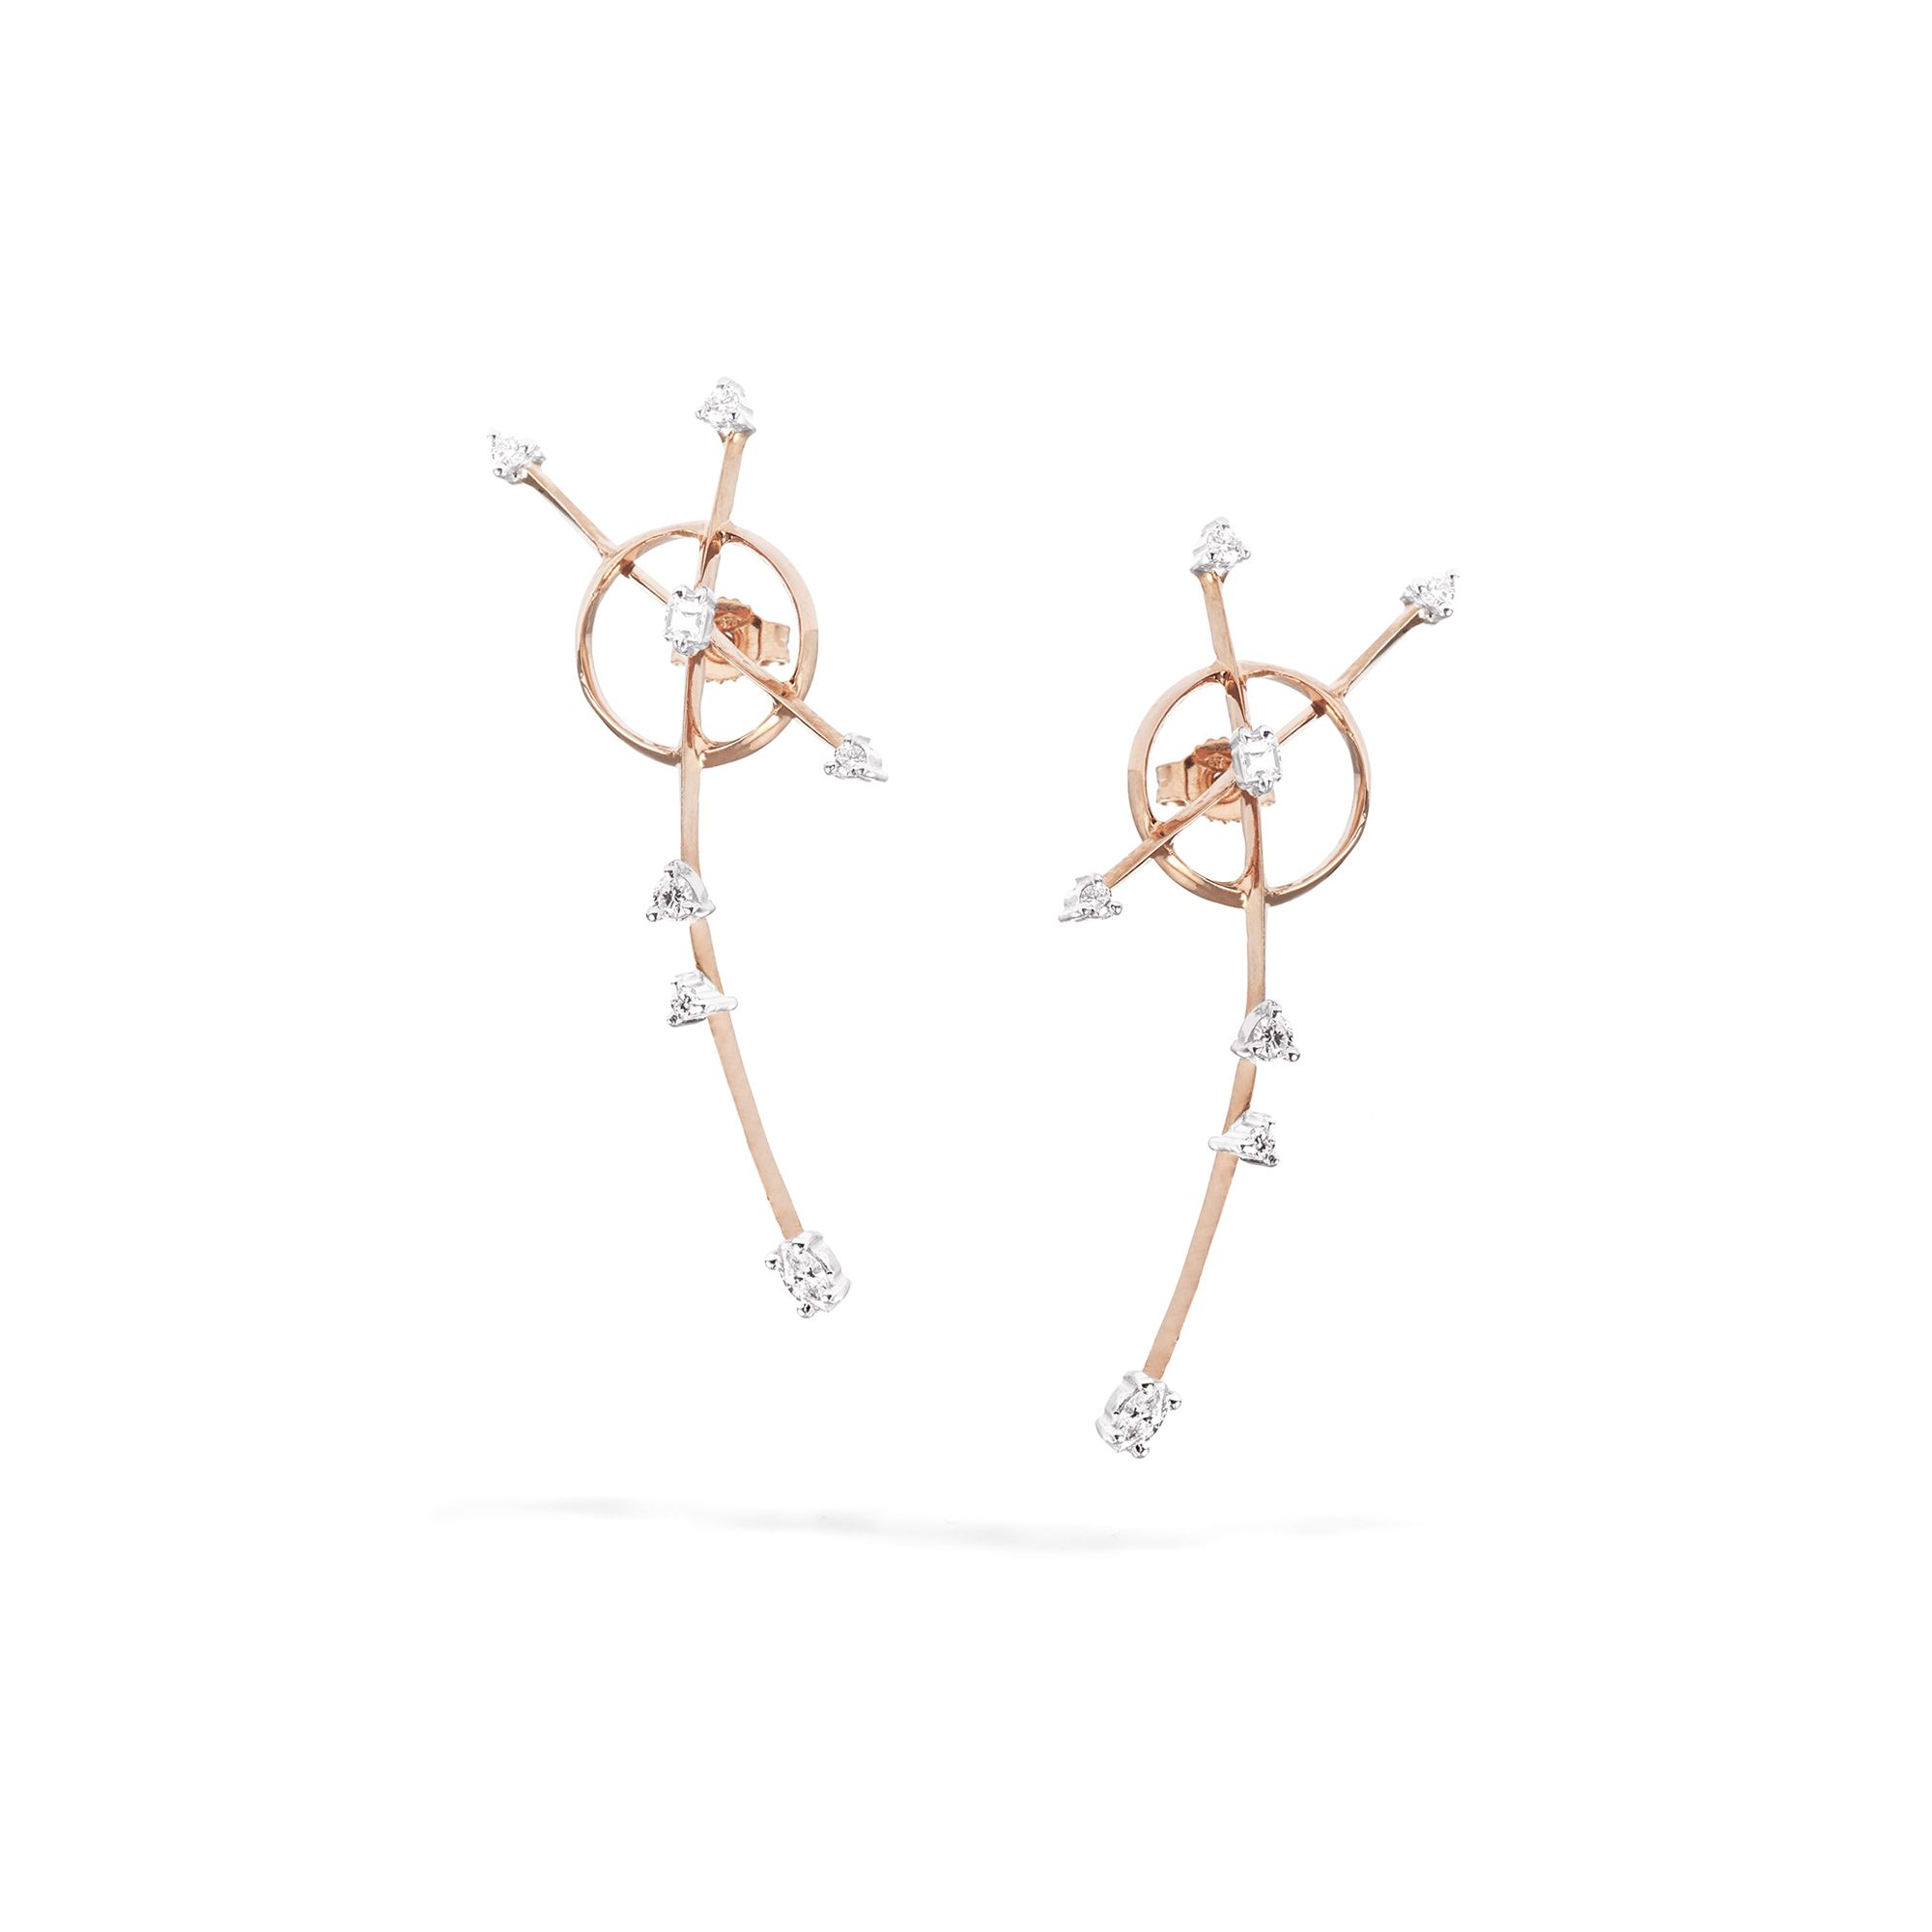 Rose gold 'Freccia' earrings Rose gold earrings with diamonds